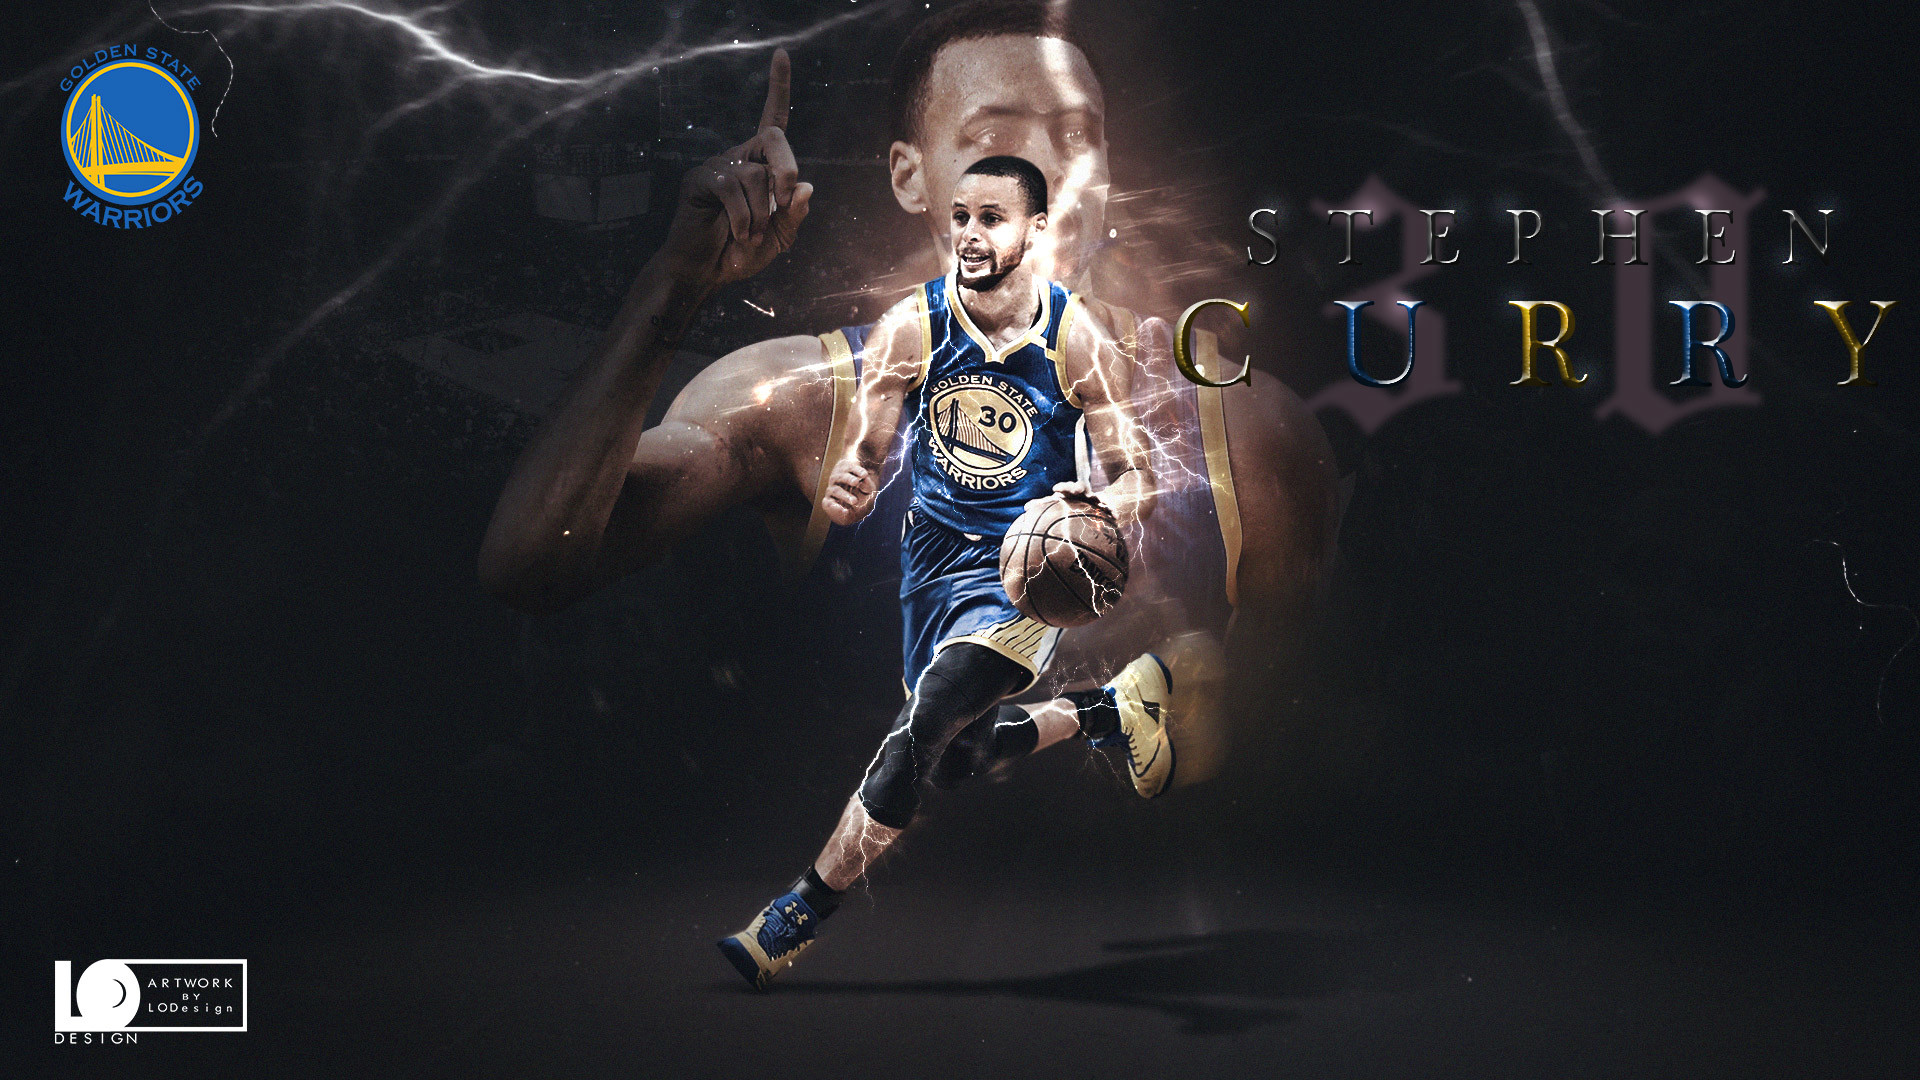 1920x1080 Stephen Curry 2017 Playoffs  Wallpaper